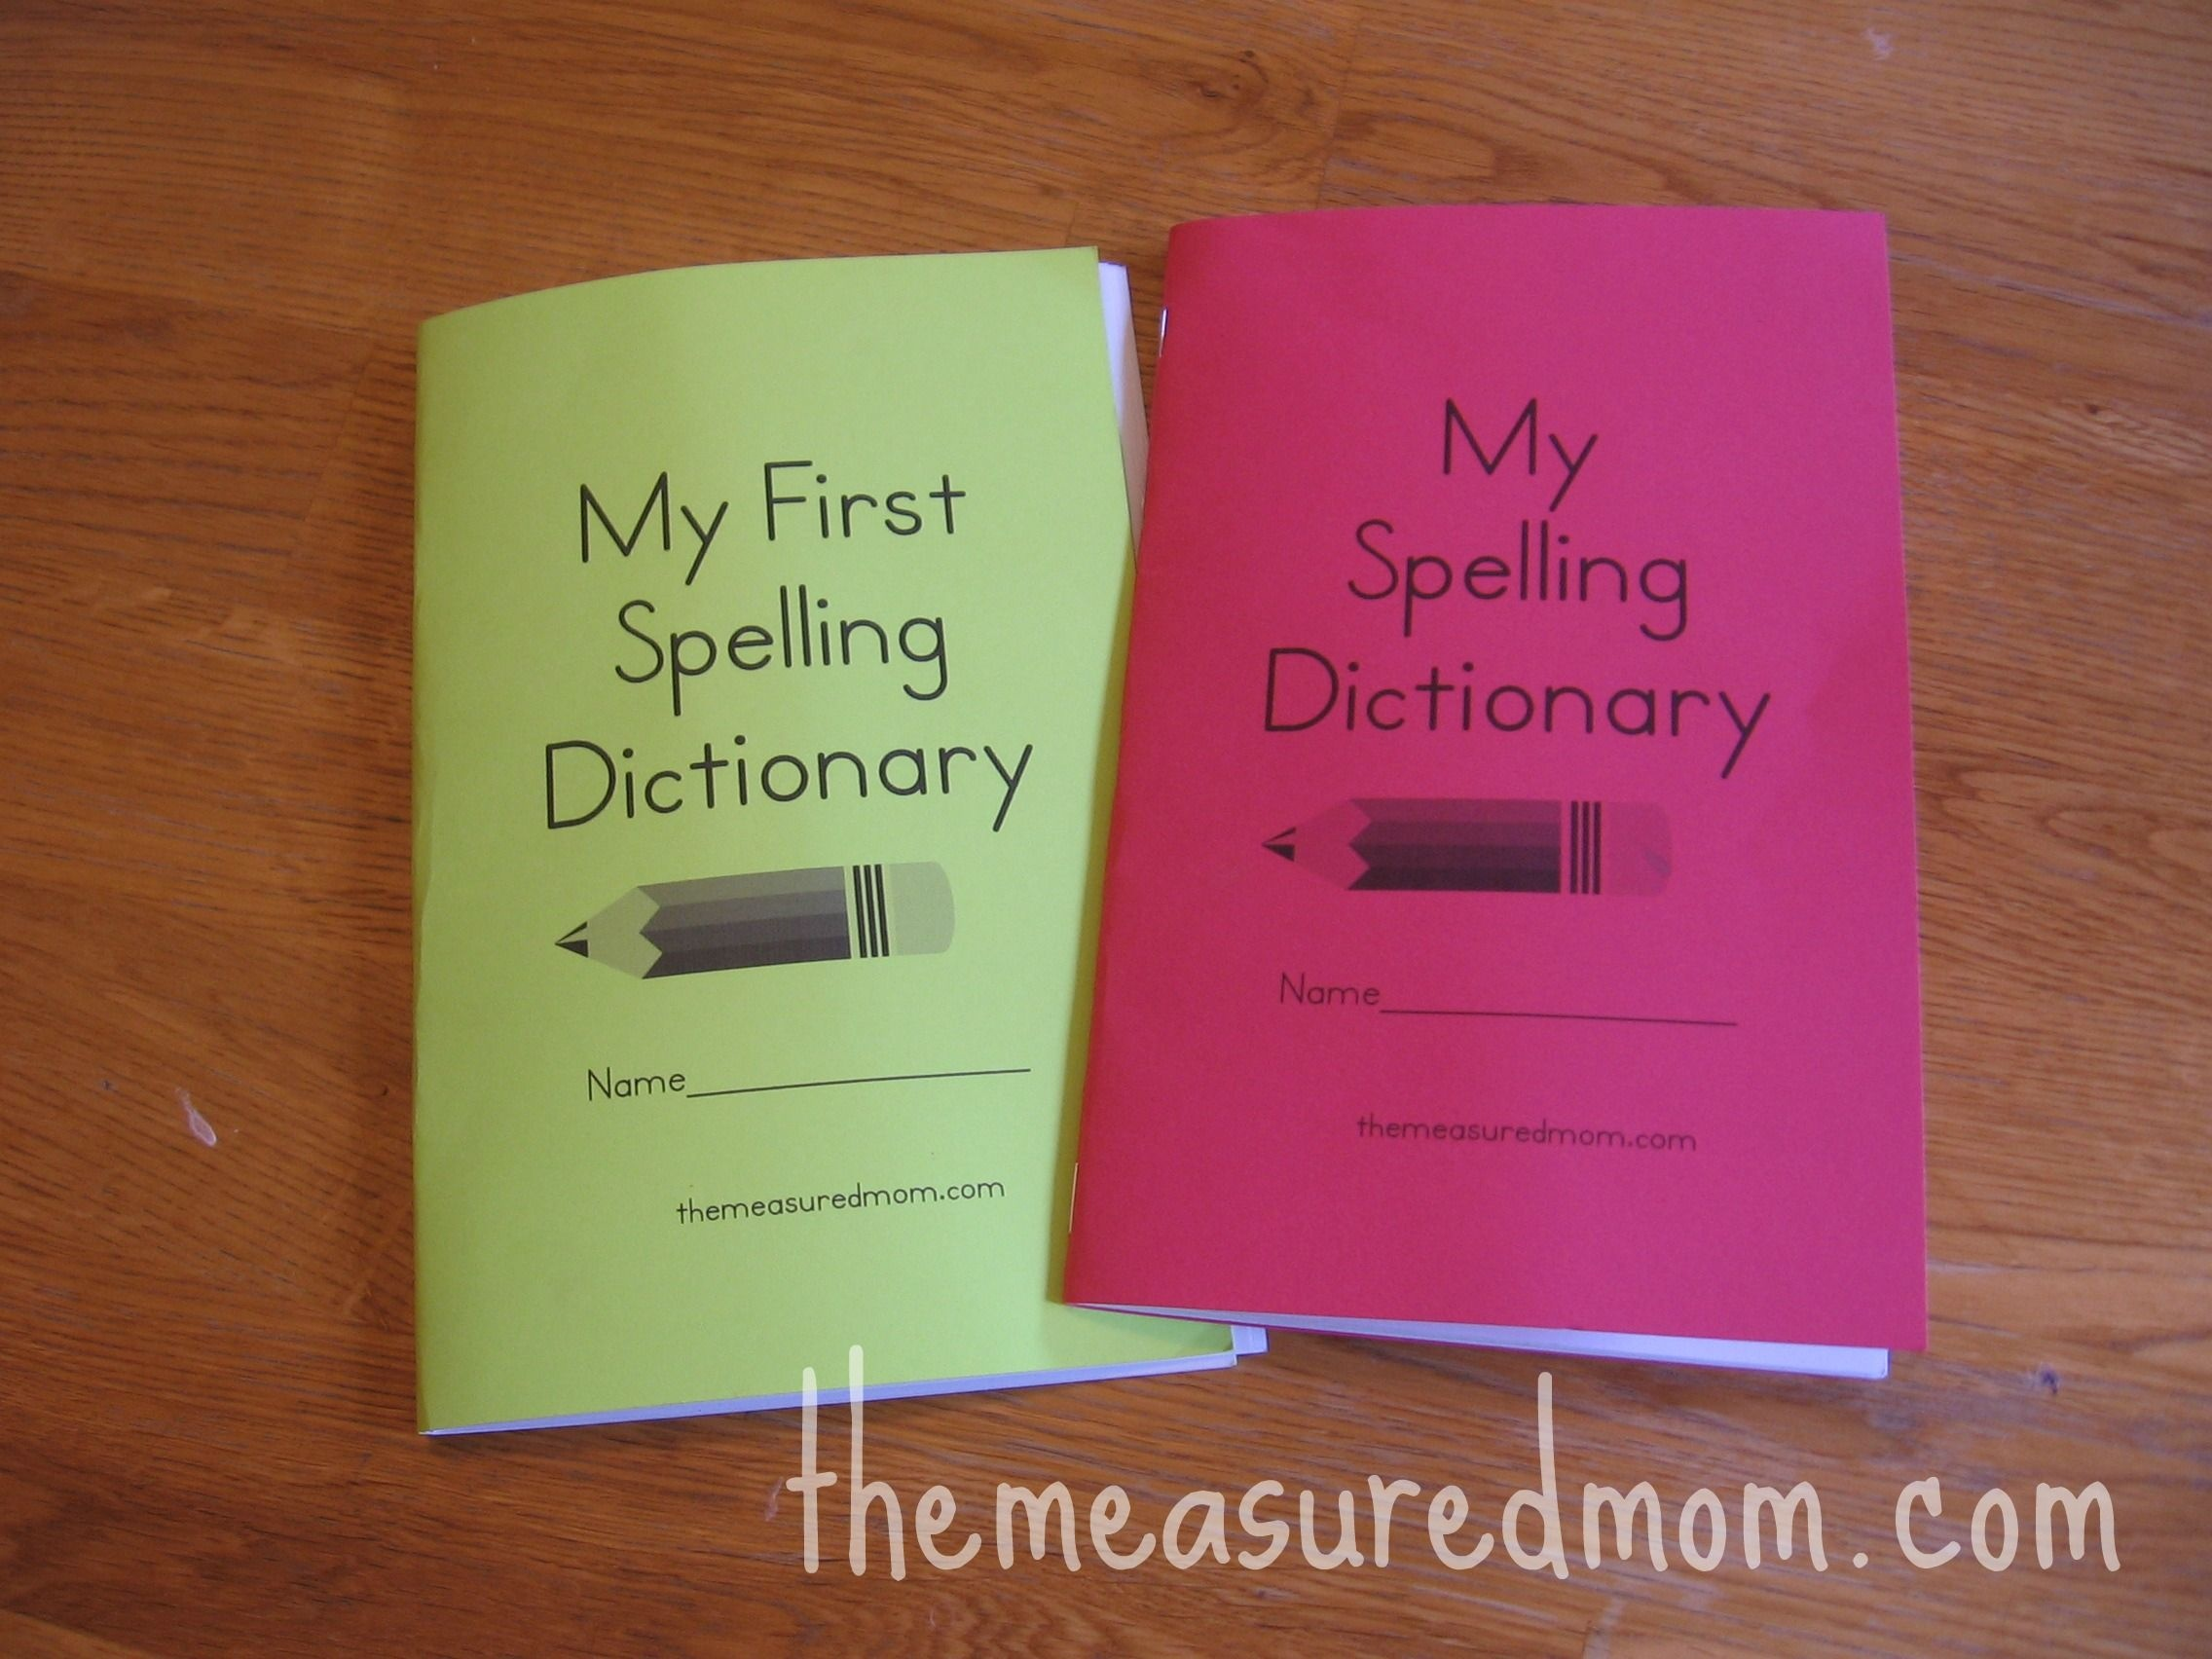 Printable Spelling Dictionary For Kids | Free Cute Printables - My Spelling Dictionary Printable Free